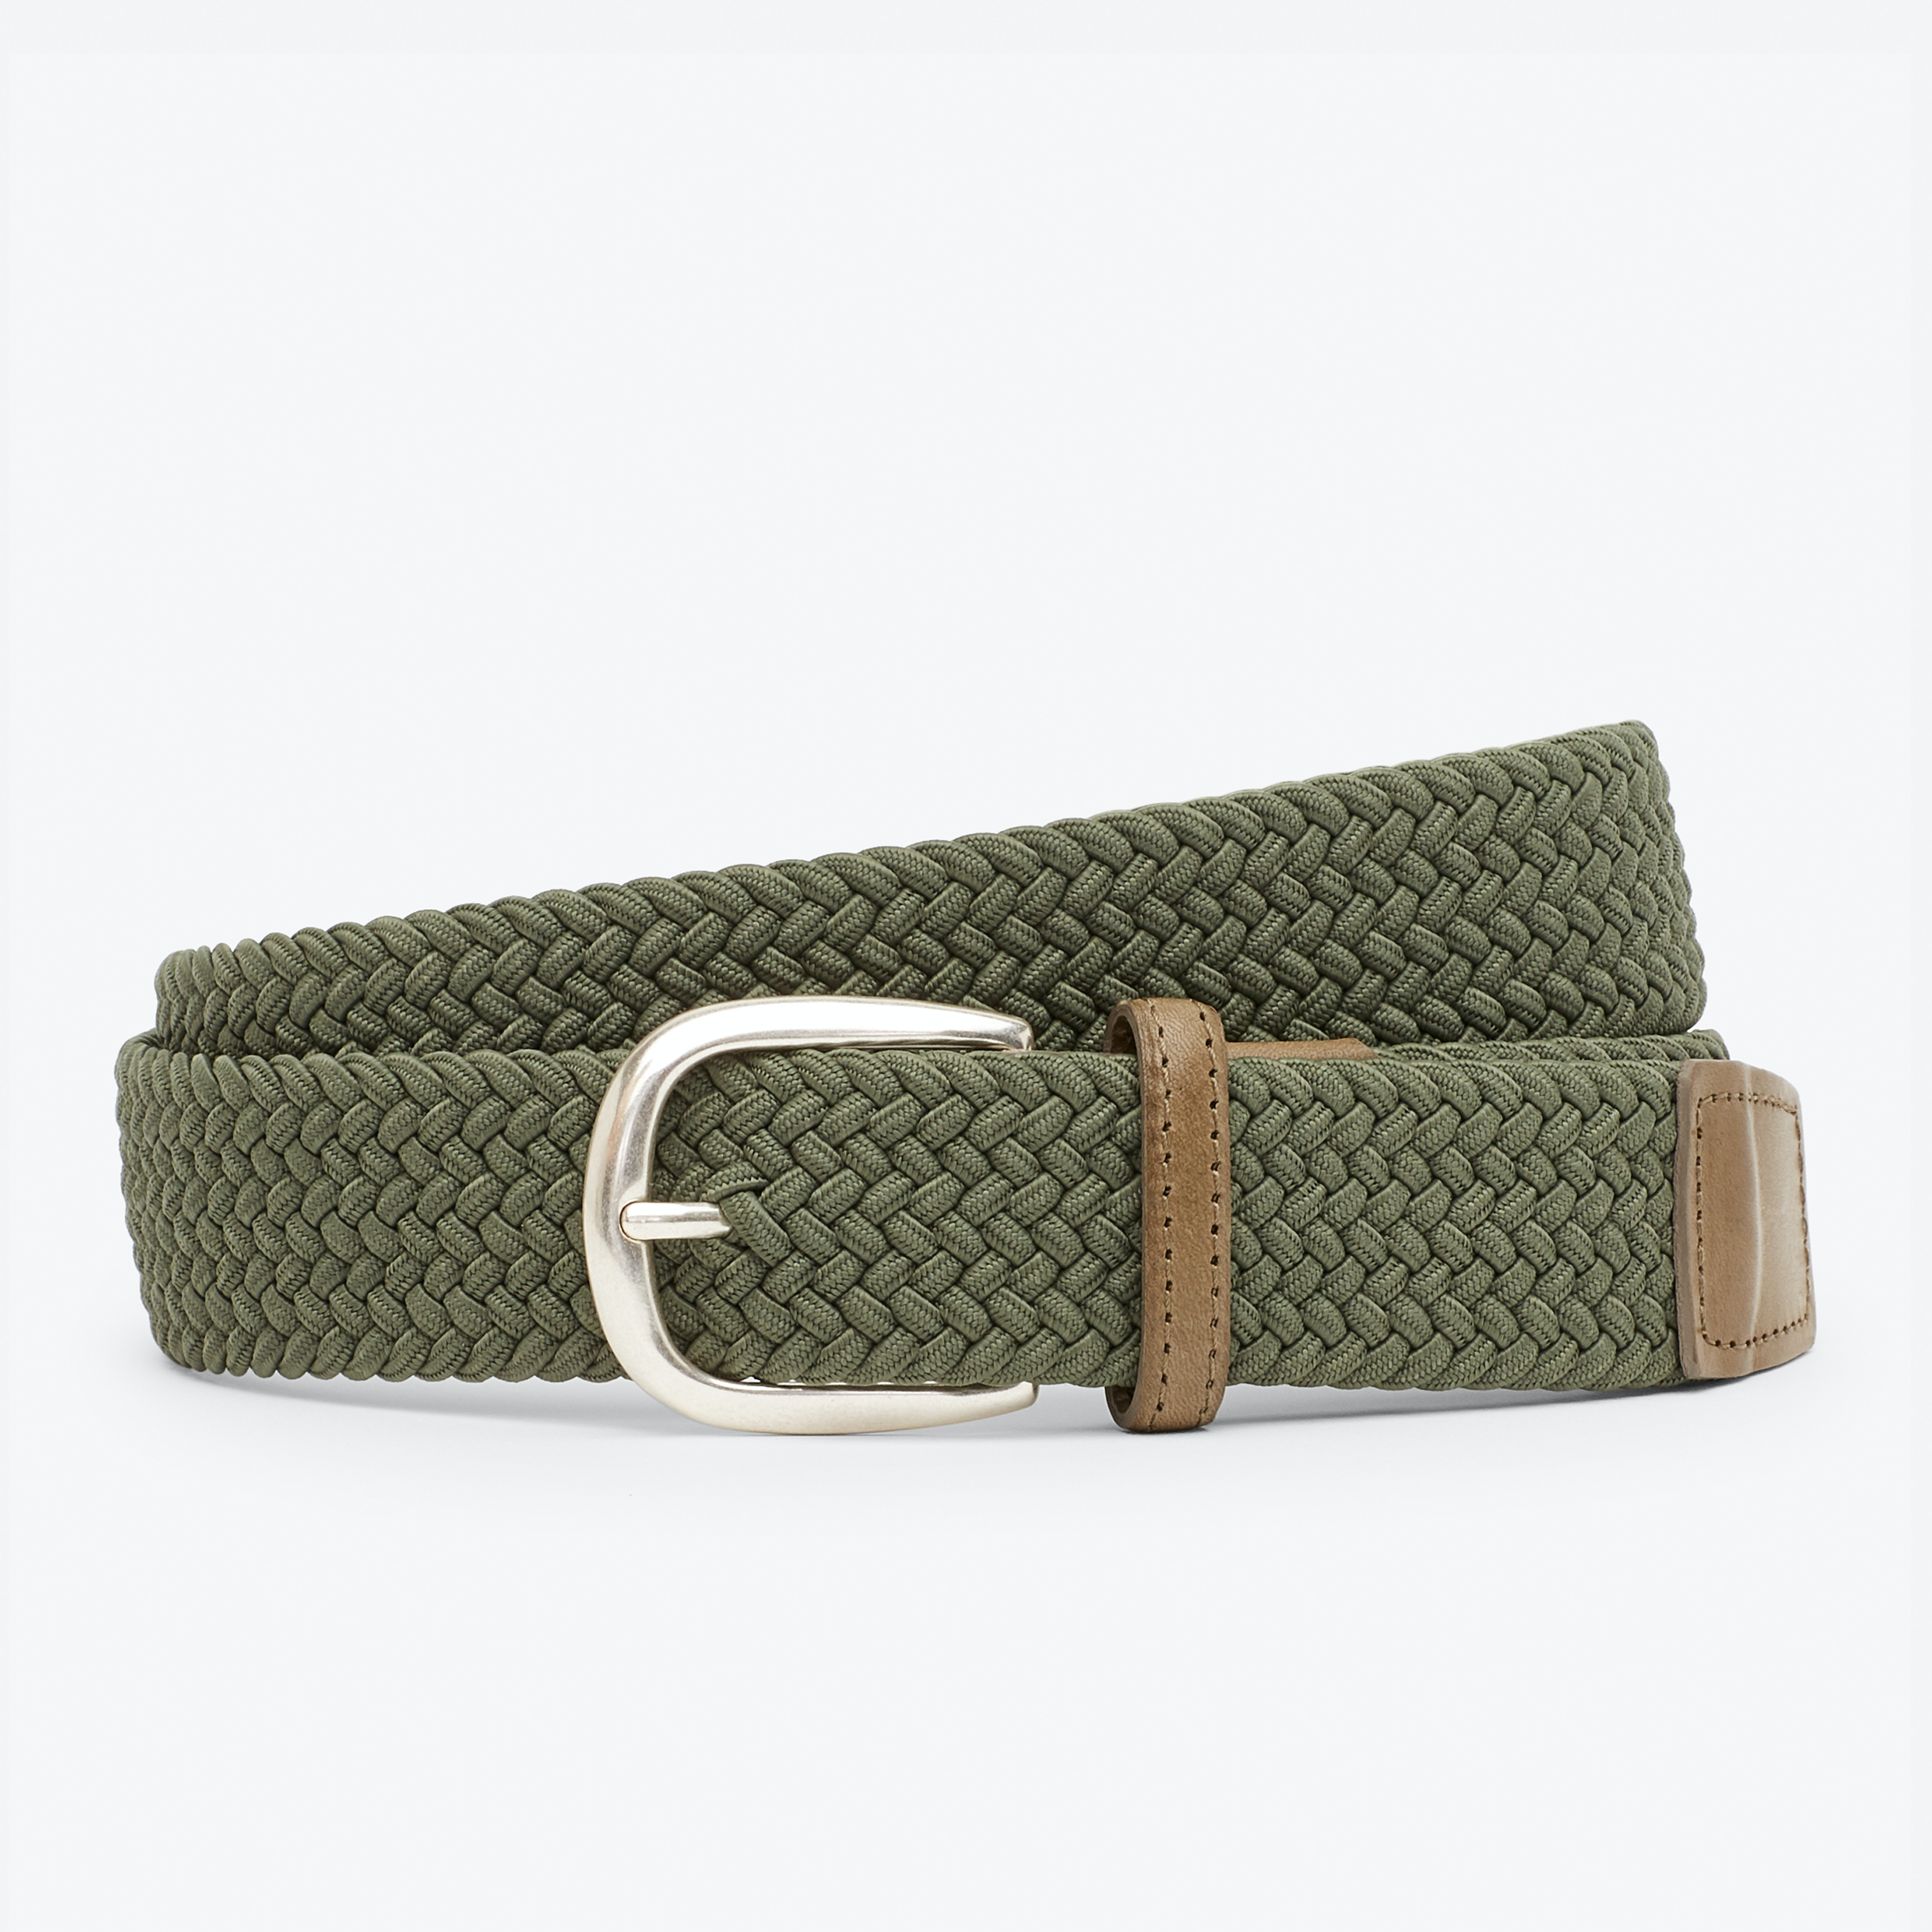 The Clubhouse Stretch Belt